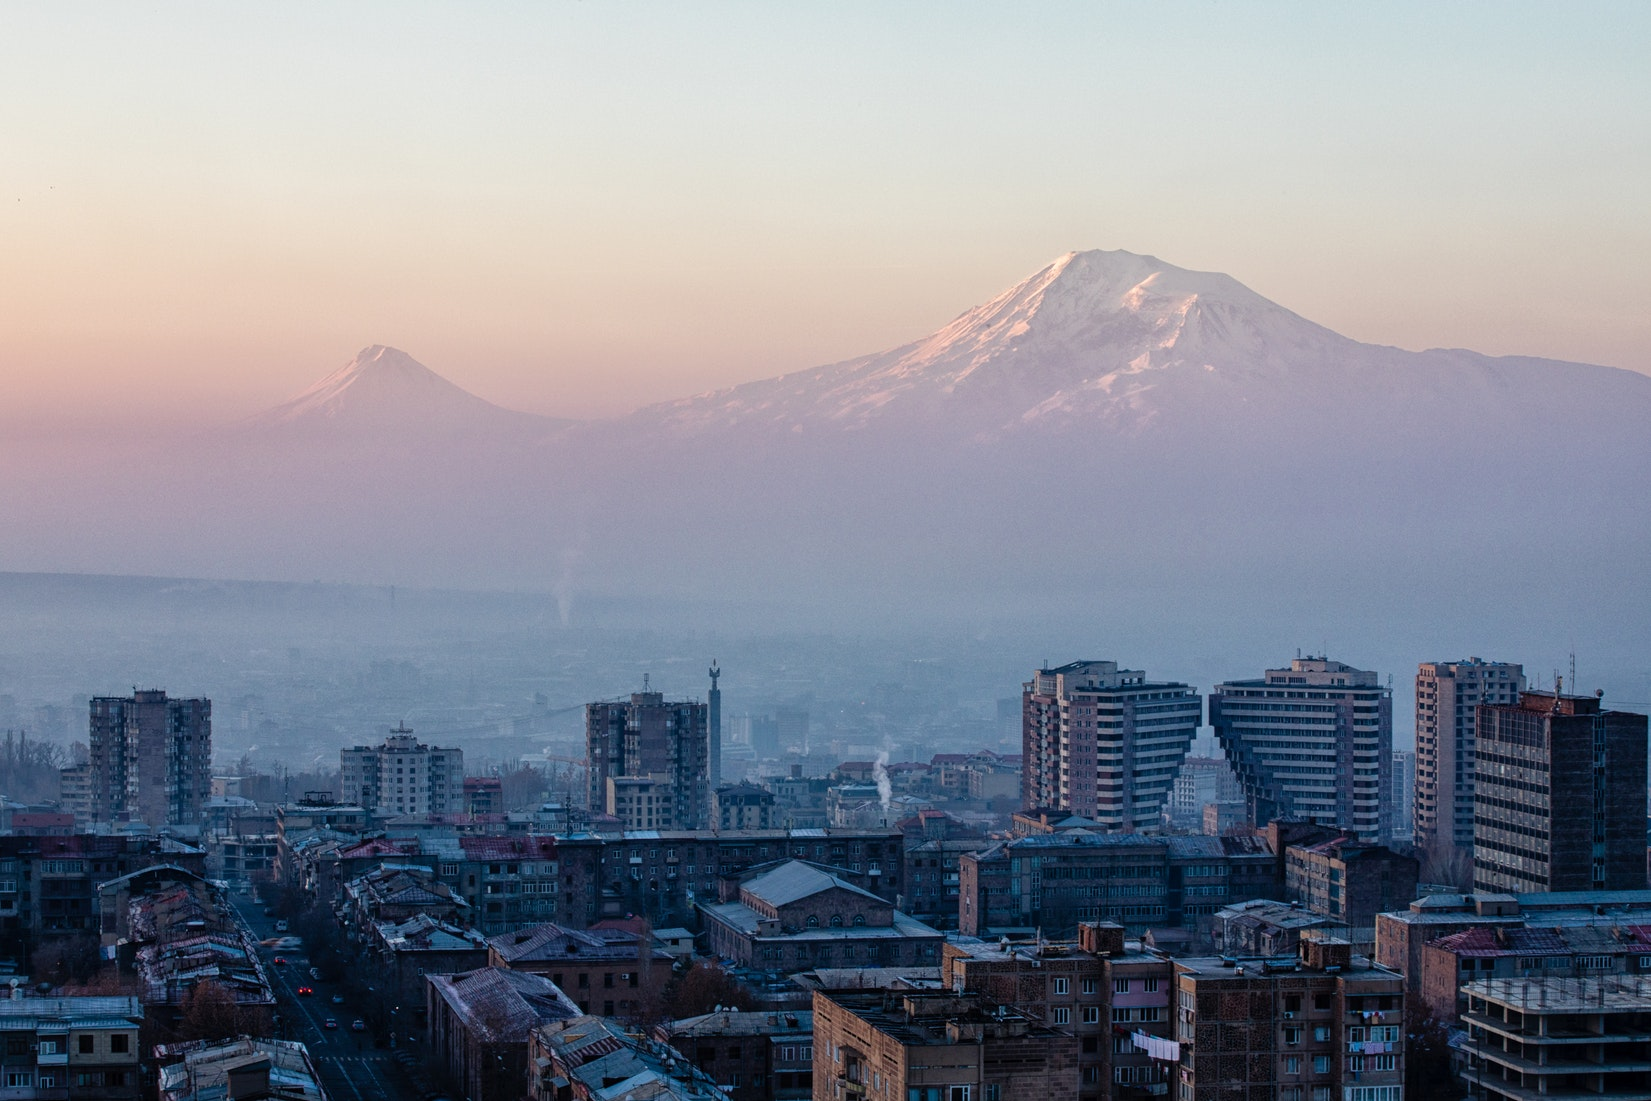 The Armenian city of Yerevan with mountains in the distance